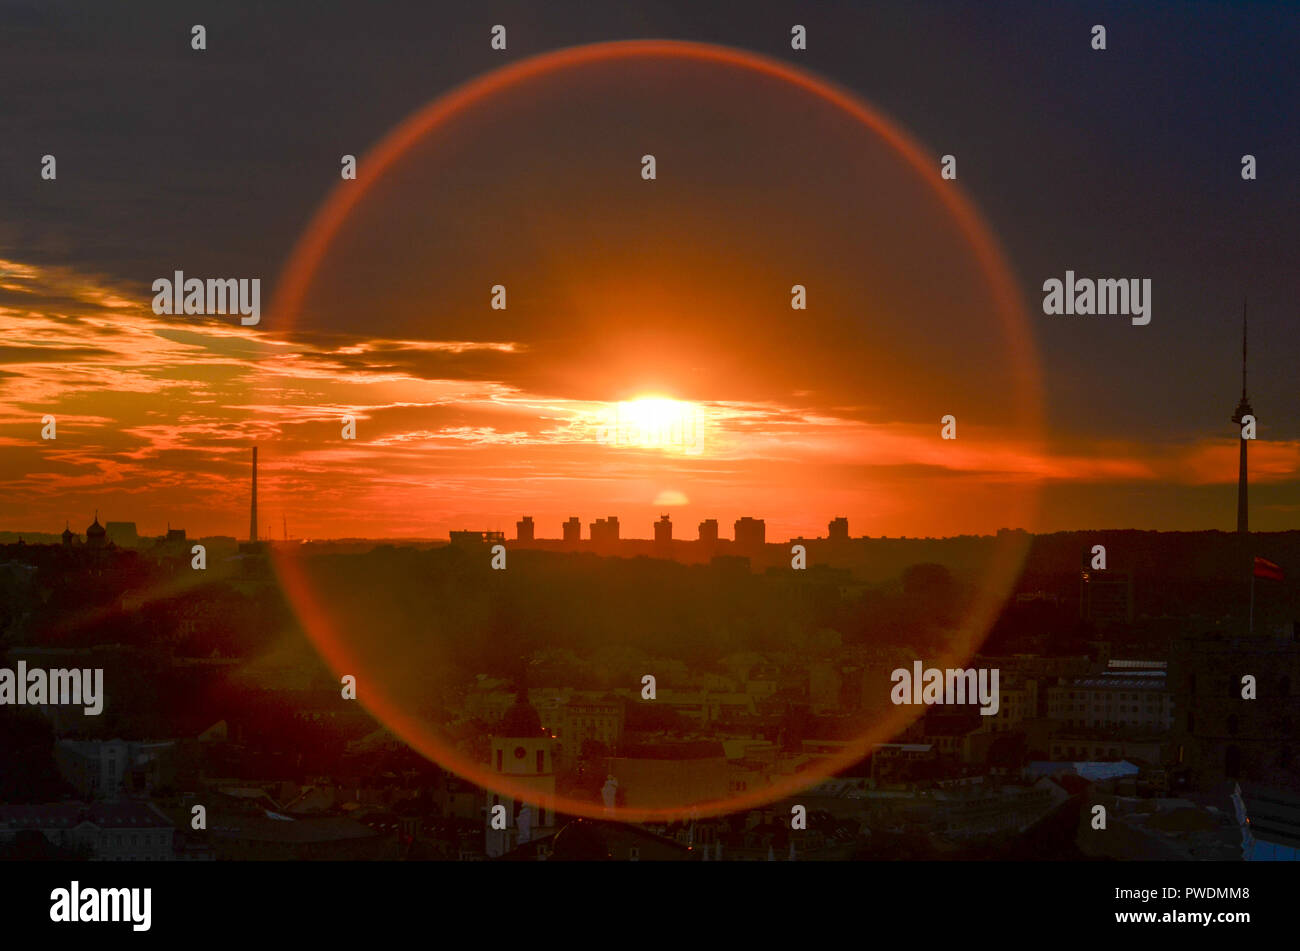 Panoramic view of Vilnius at sunset with circular lens flare, Lithuania - Stock Image